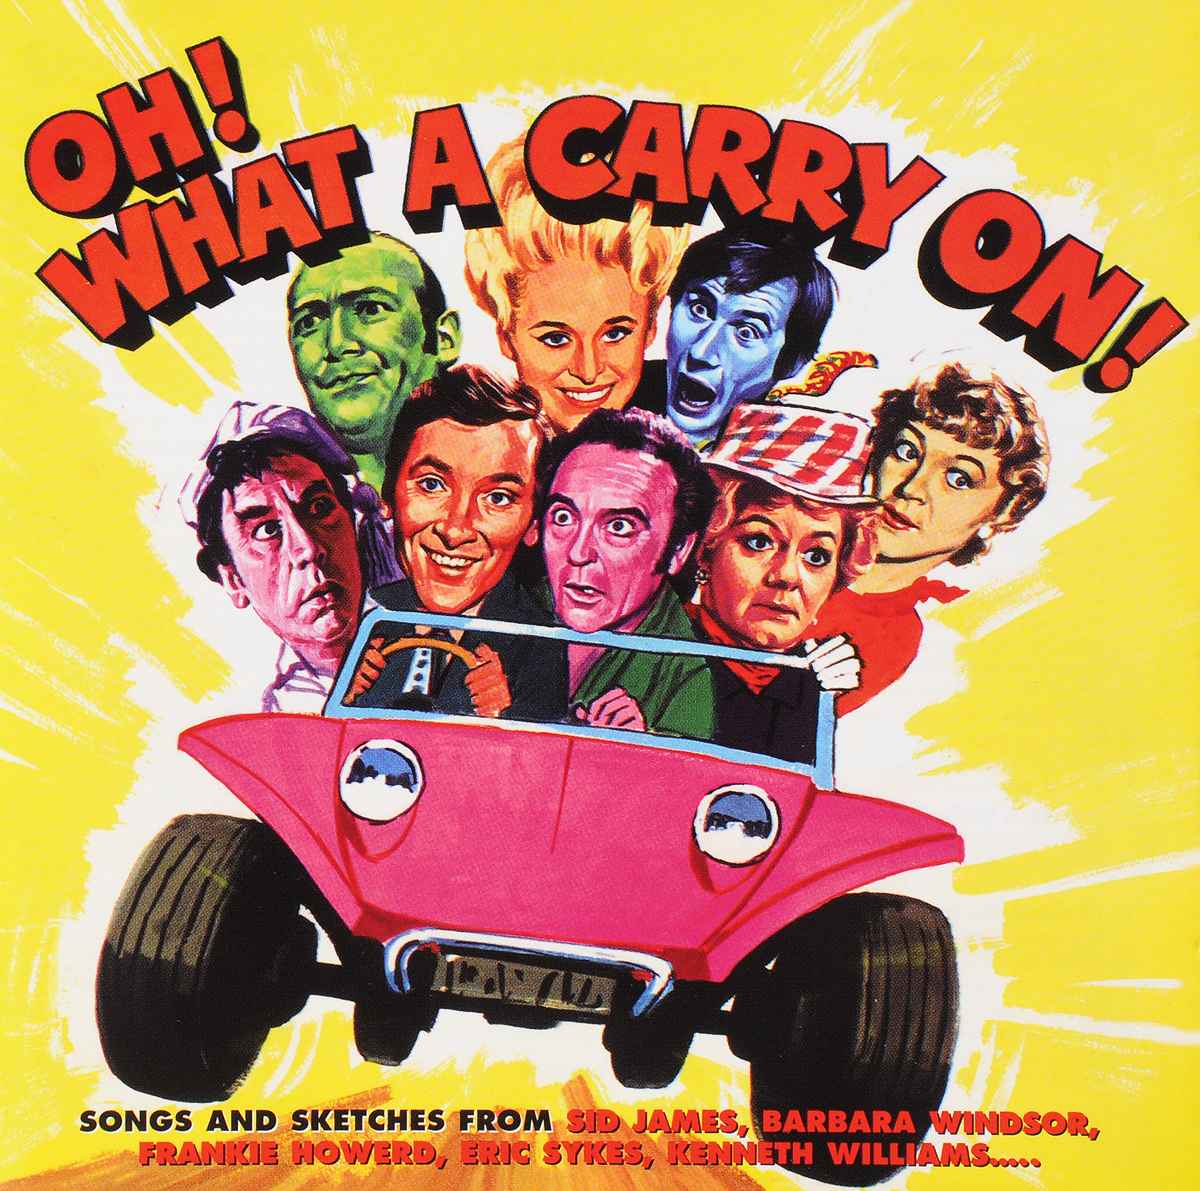 VARIOUS ARTISTS. OH! WHAT A CARRY ON!